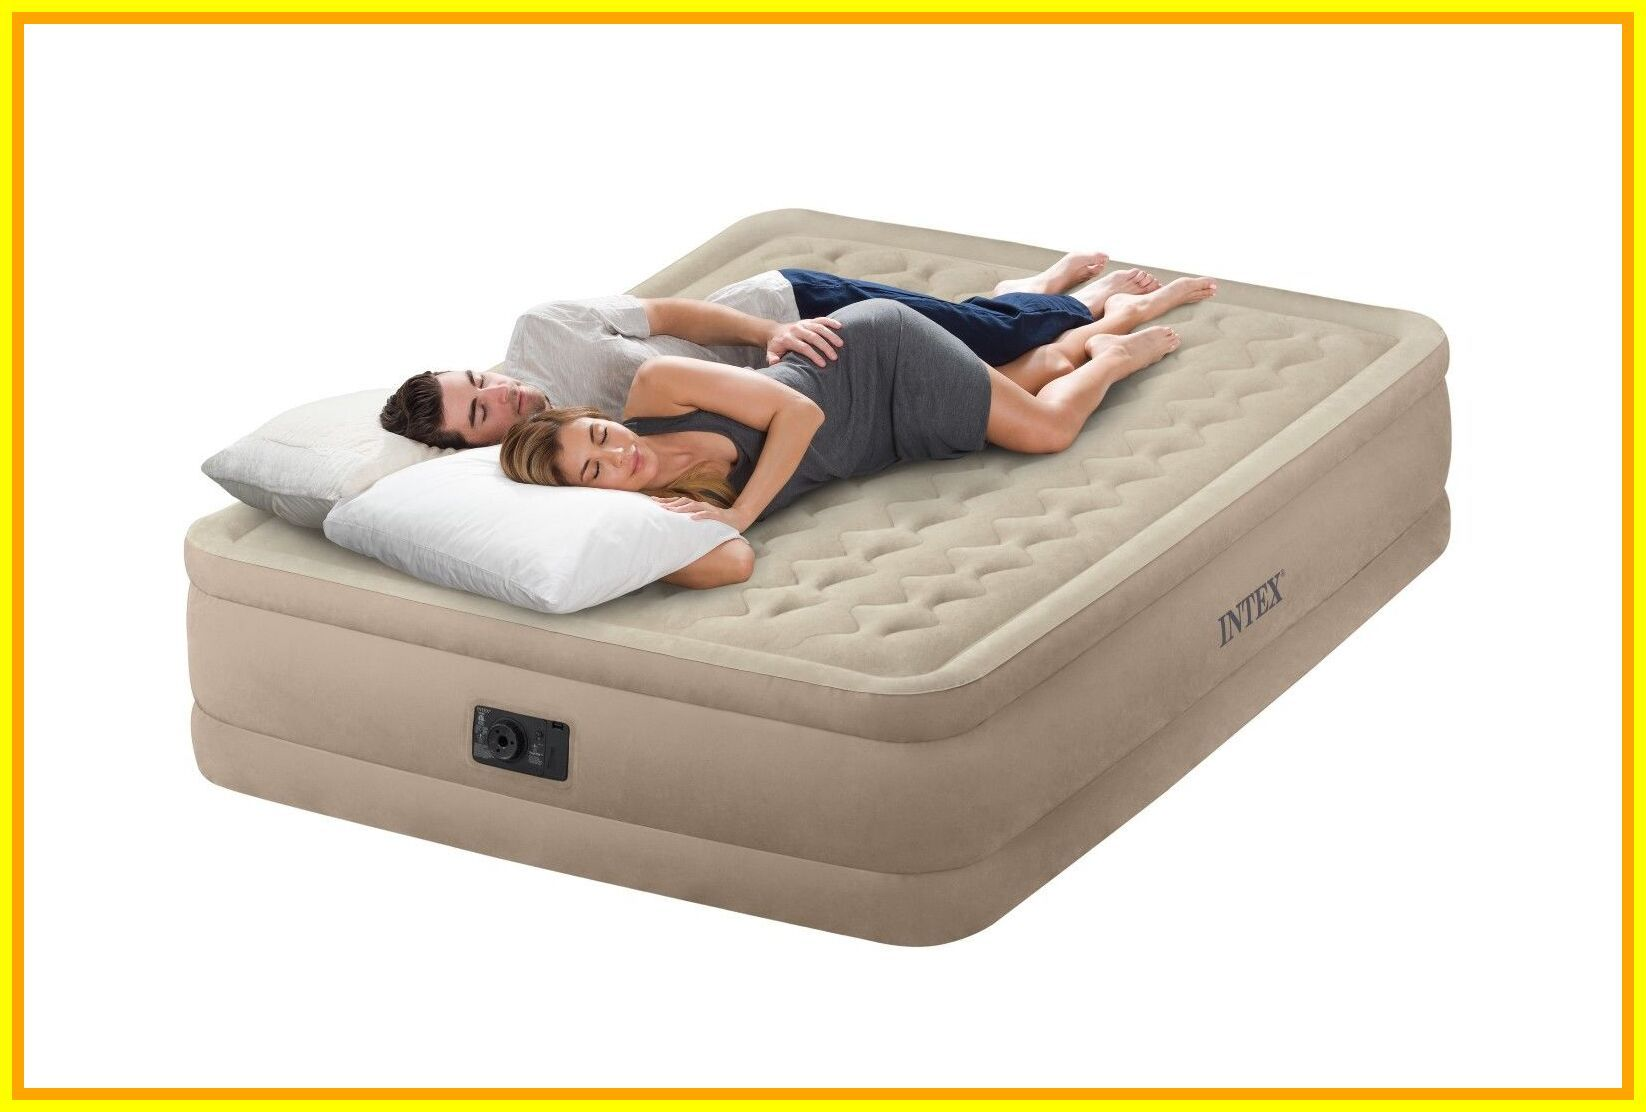 90 reference of queen bed air mattress 240v in 2020 Air